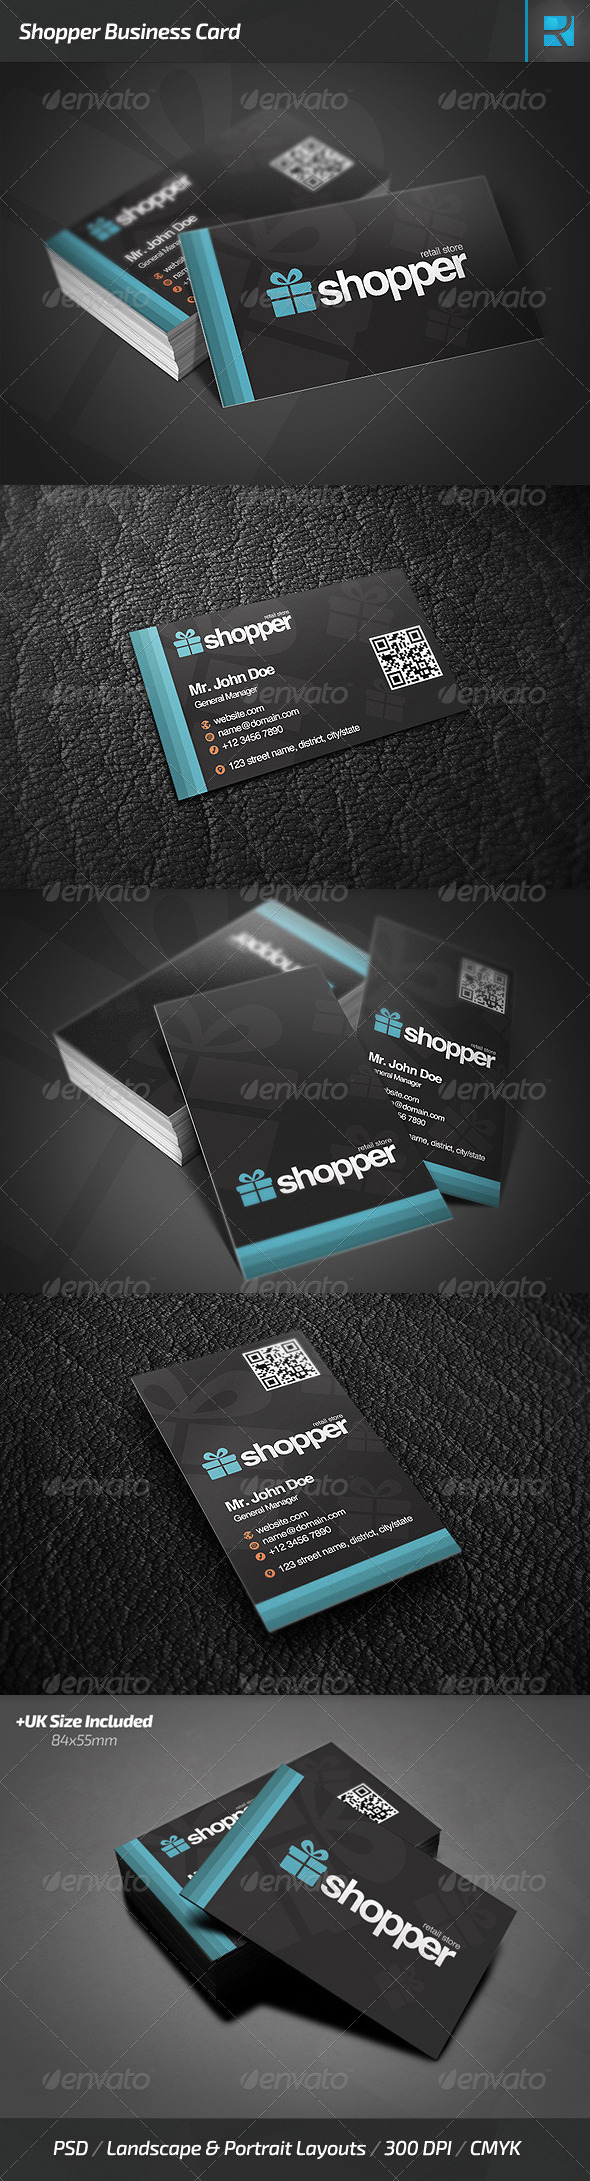 GraphicRiver Shopper Business Card 7651851